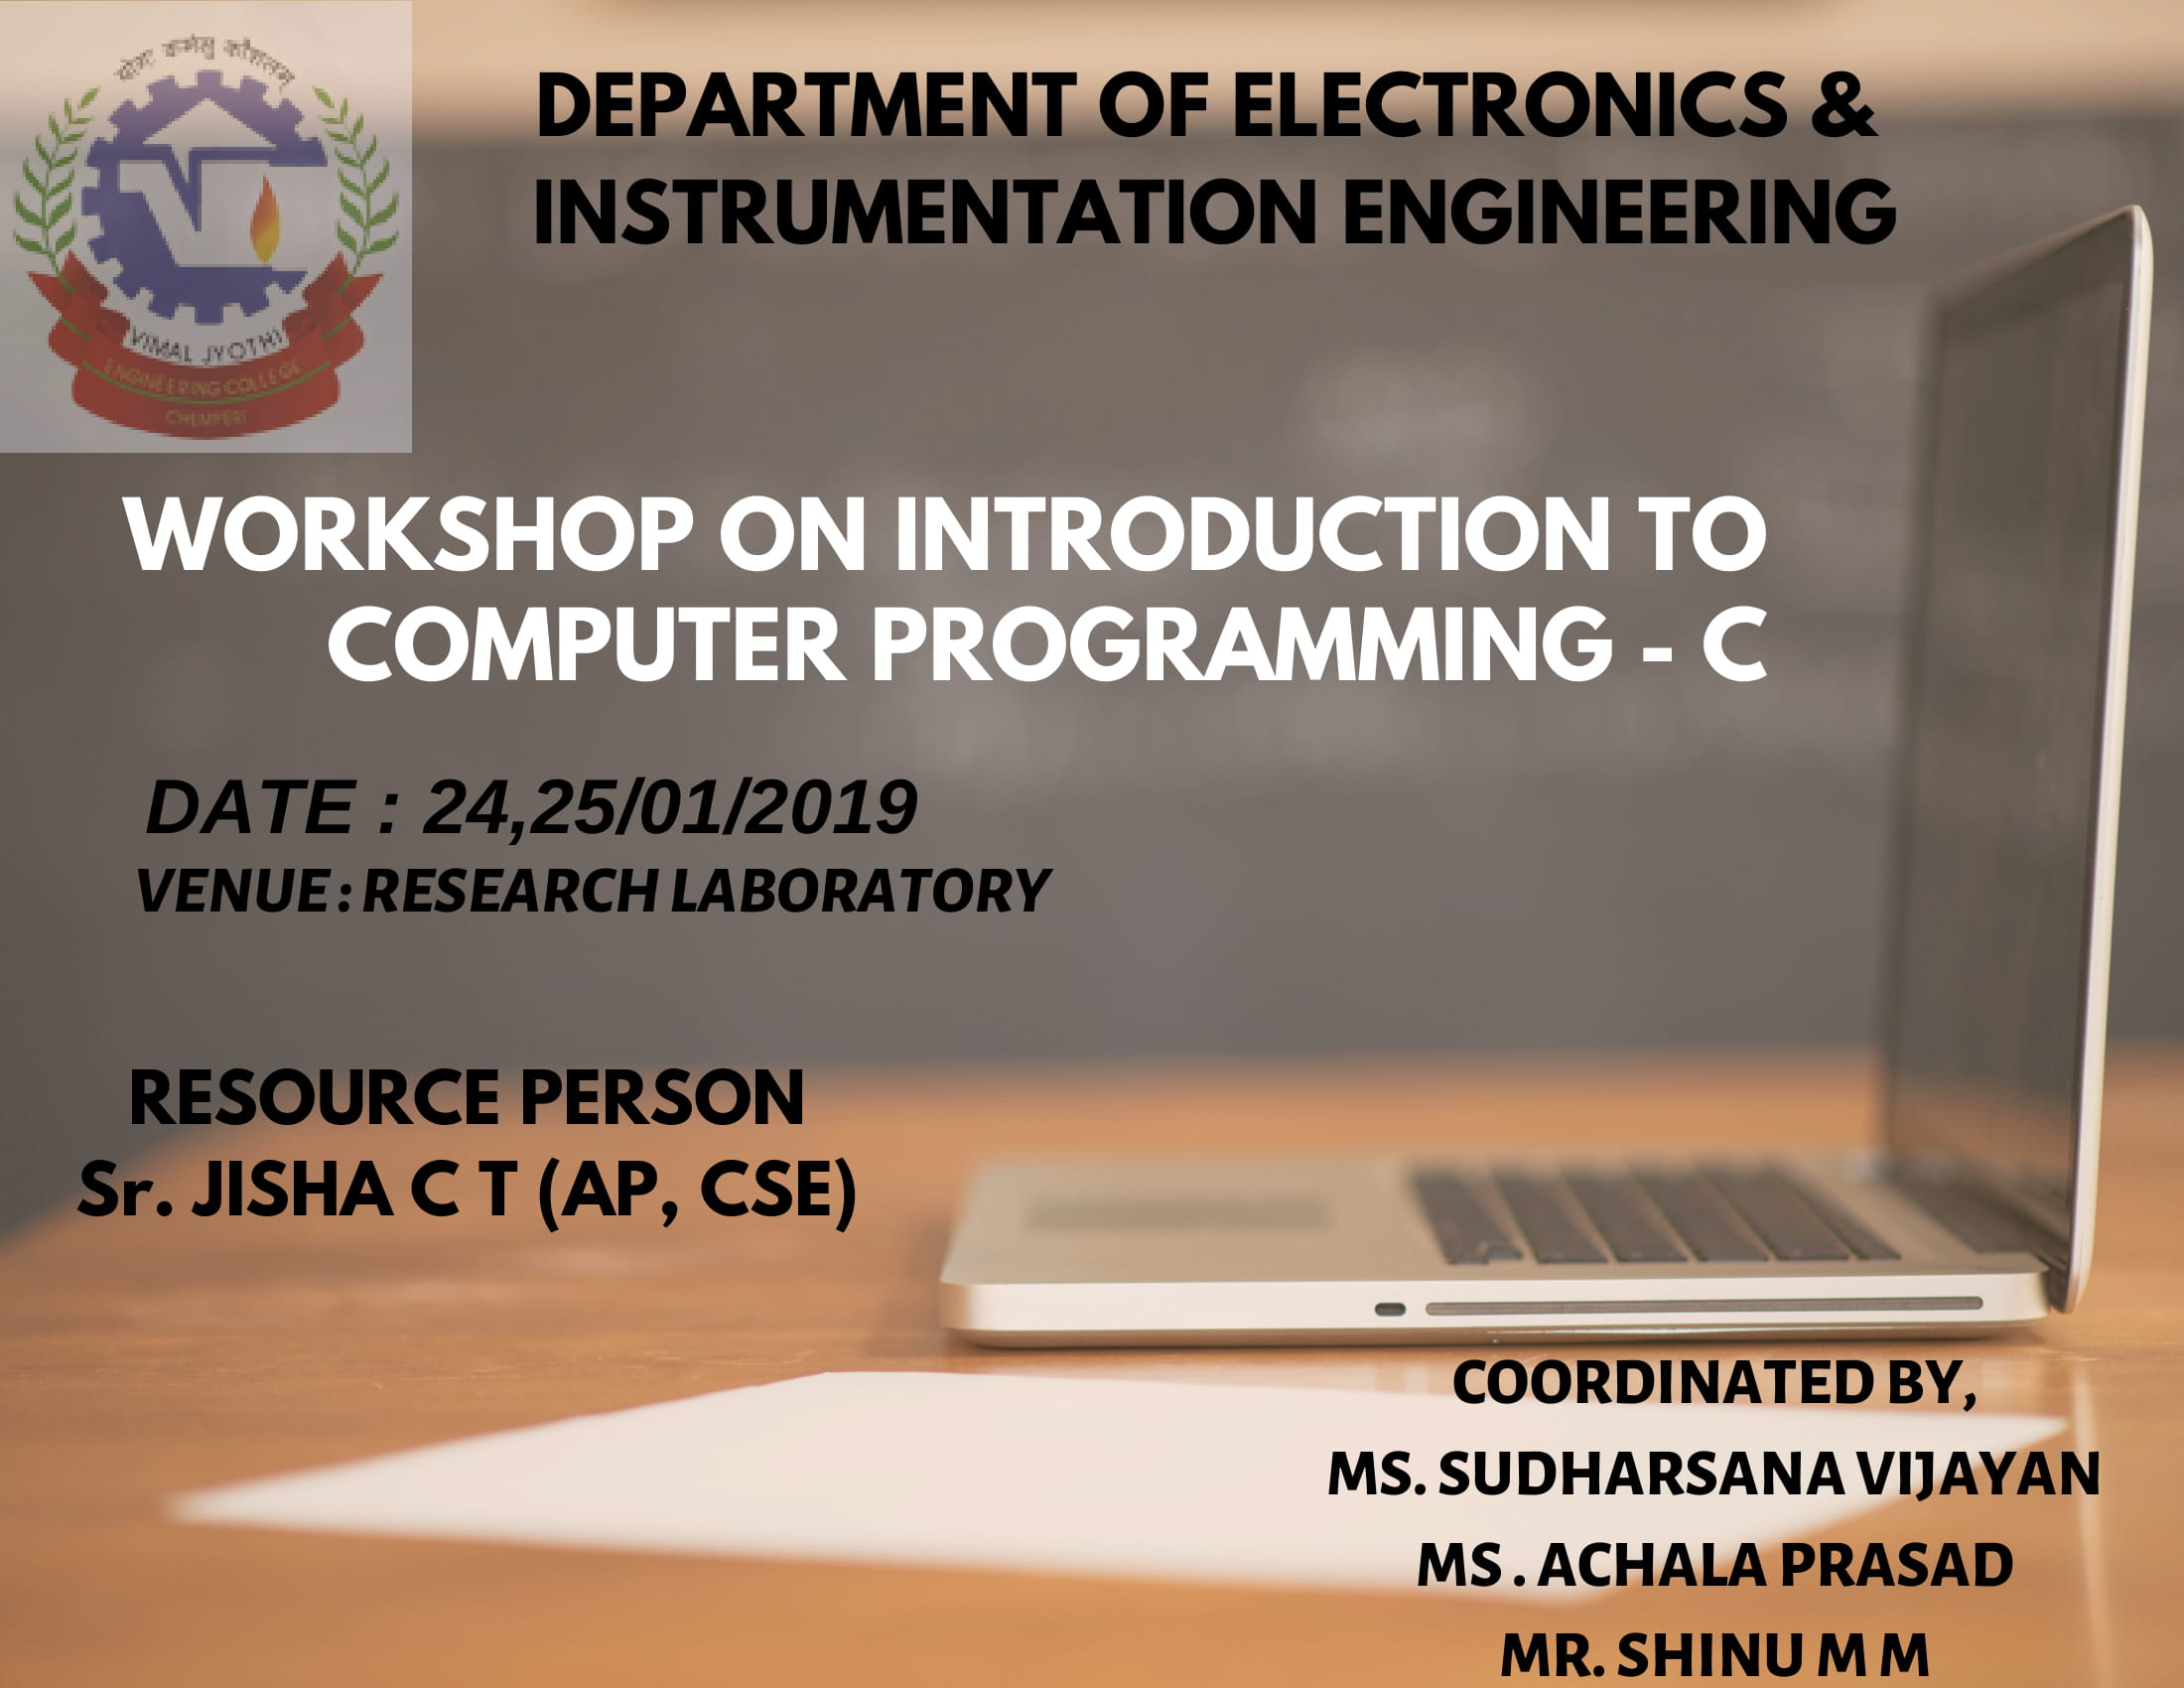 WORKSHOP ON INTRODUCTION TO COMPUTER PROGRAMMING - C